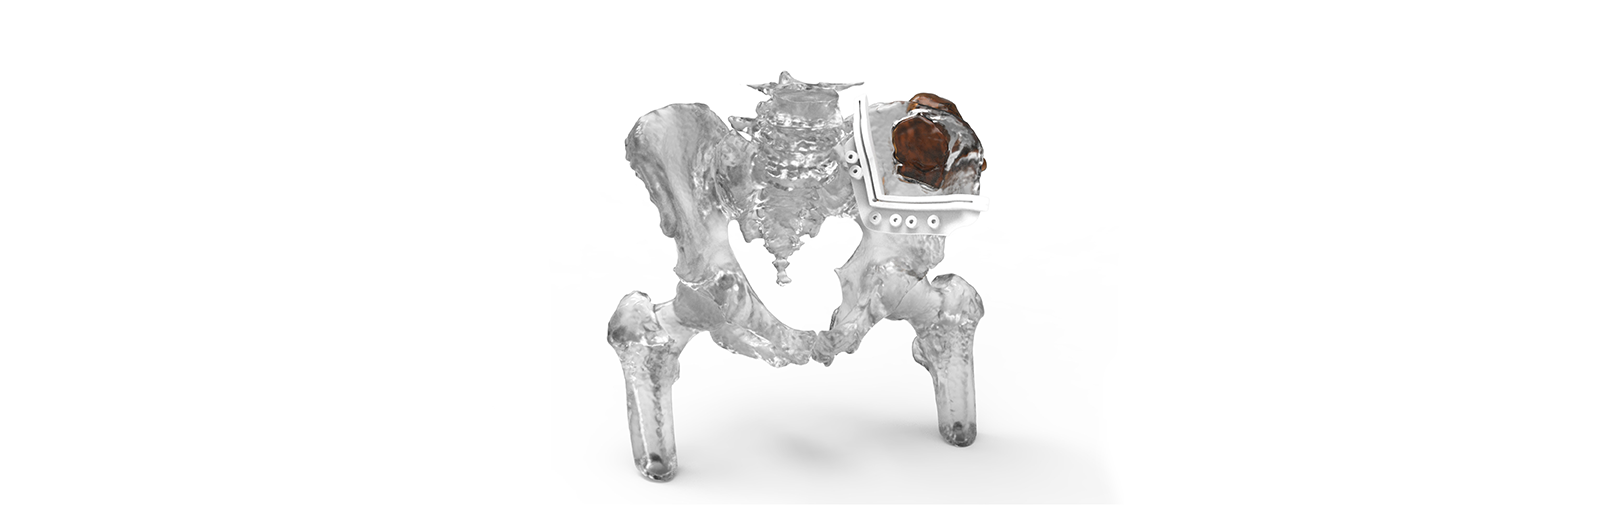 3d Systems Attains FDA Clearance For Virtual Surgical Planning Platform